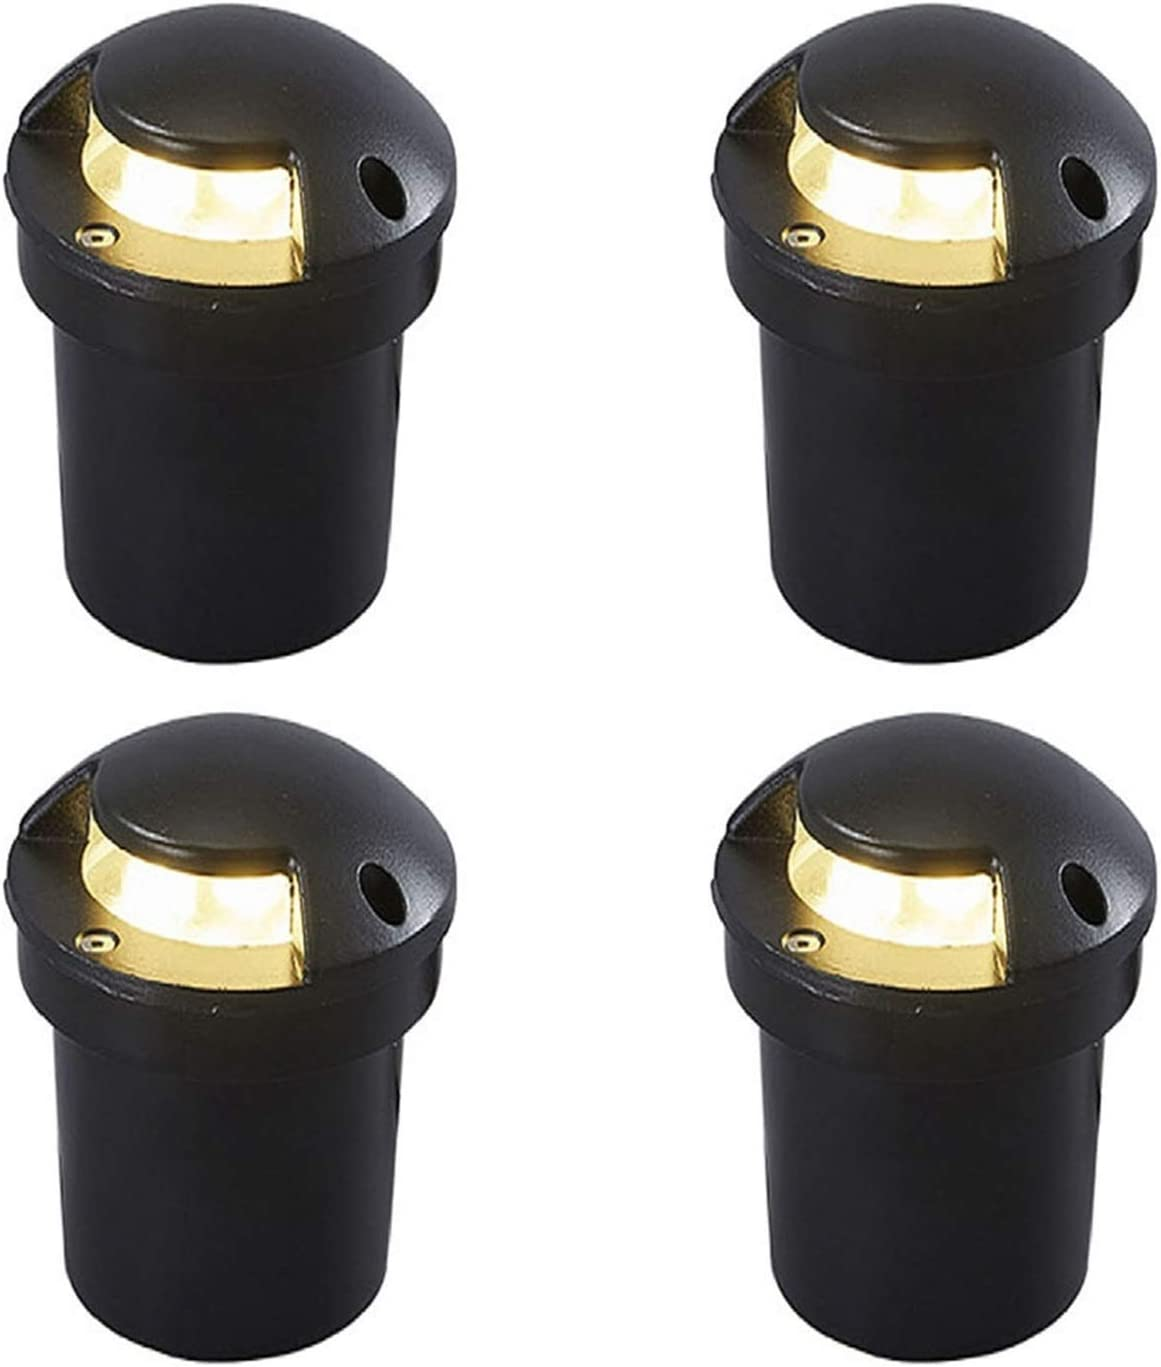 Branded goods BDSHL Led Underground Light Outdoor Easy-to-use Wa IP65 Embedded Floor